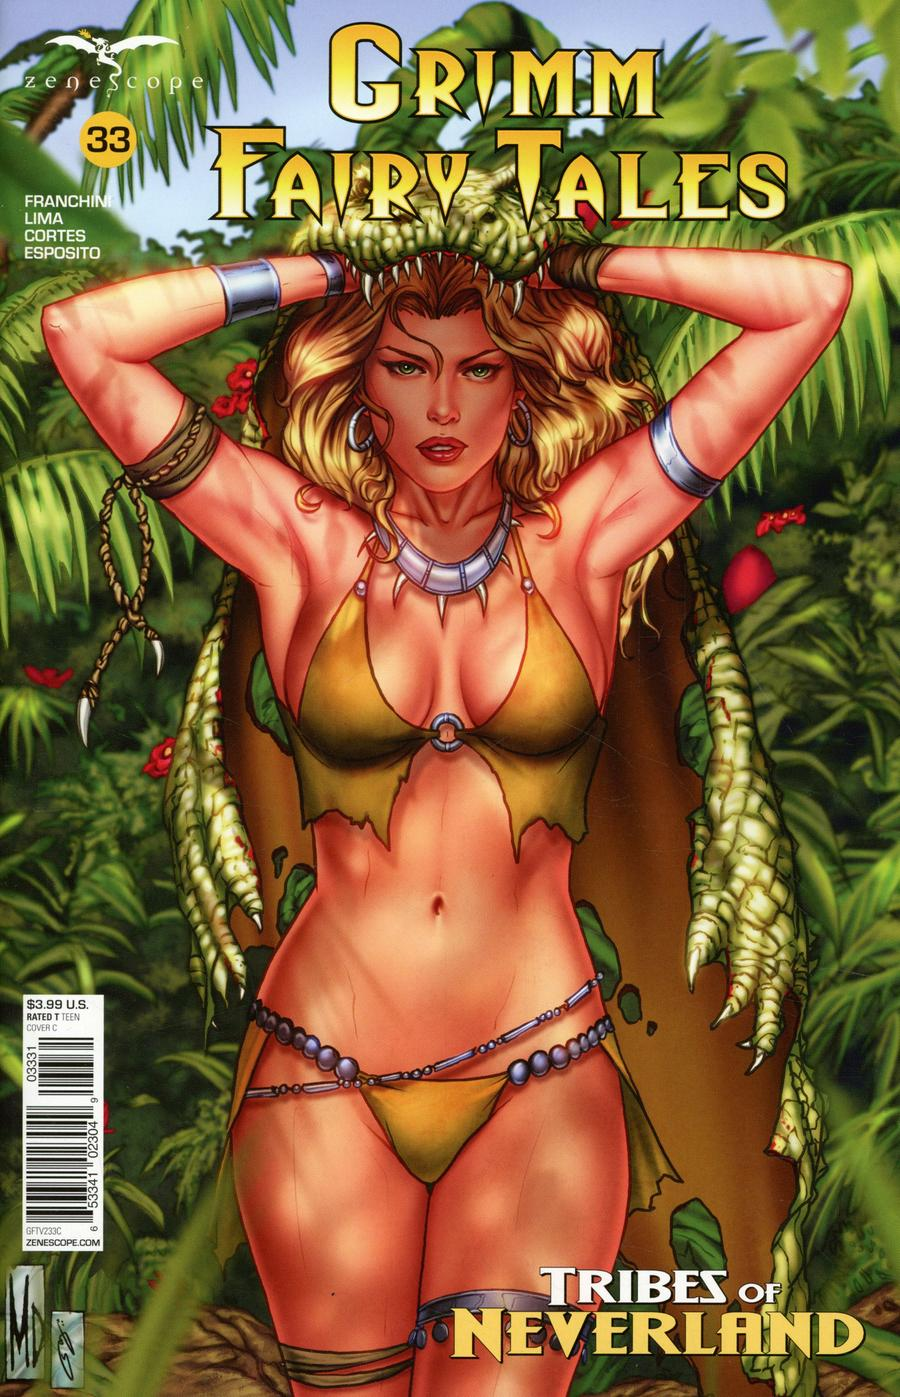 Grimm Fairy Tales #33 (2019)